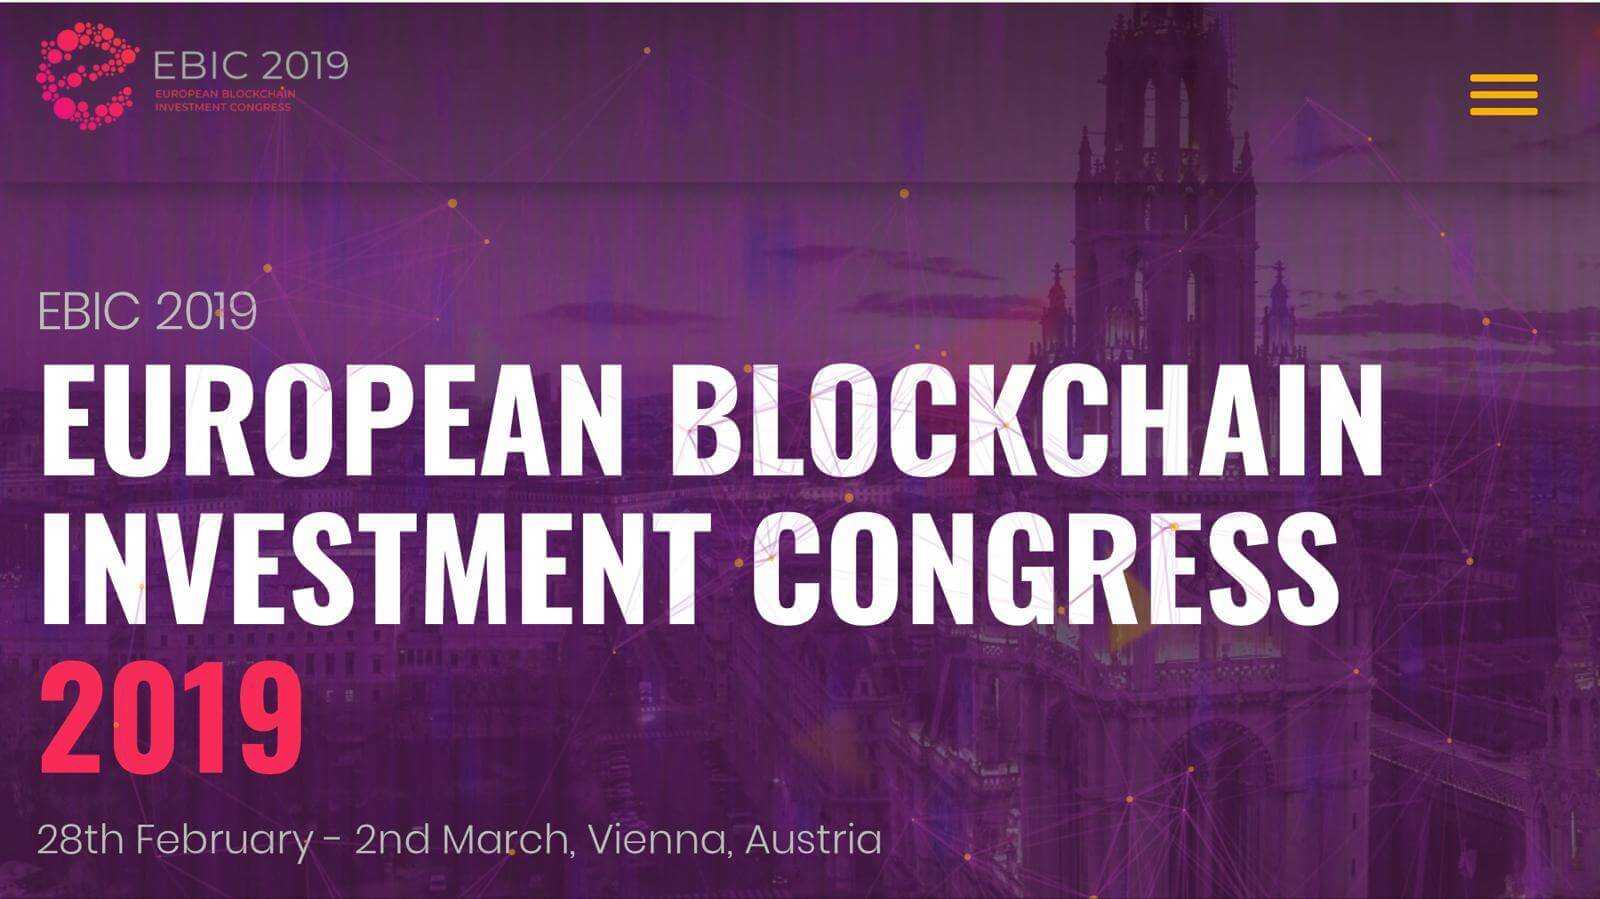 Photo of European Blockchain Investment Congress 2019 Bringing Industry Professionals, Investors And Startups Together In Vienna